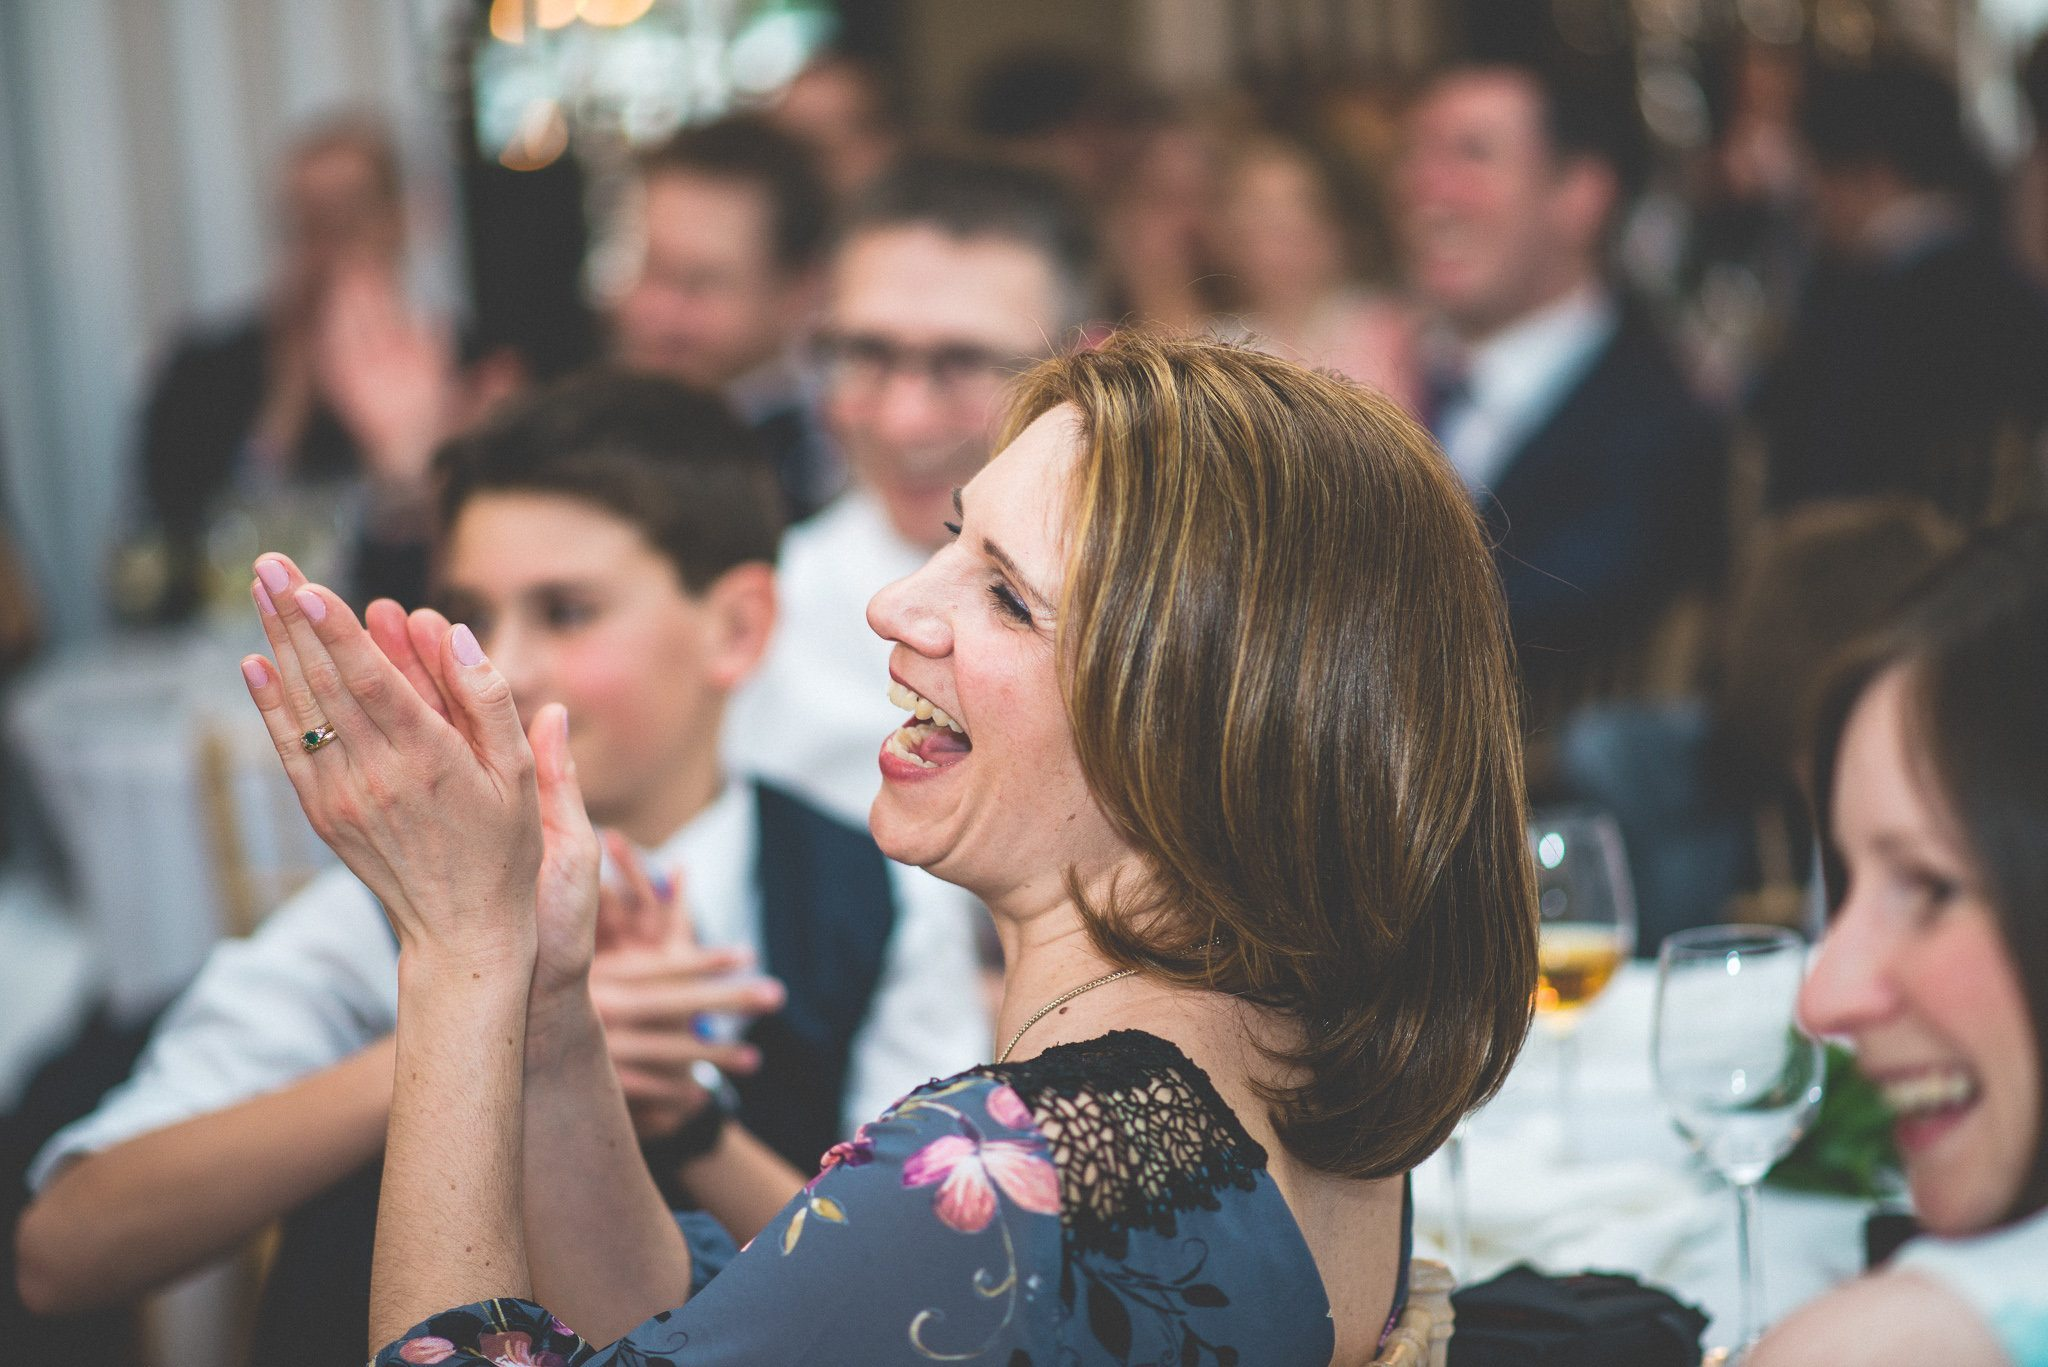 A close up of one of the guests laughing and applauding